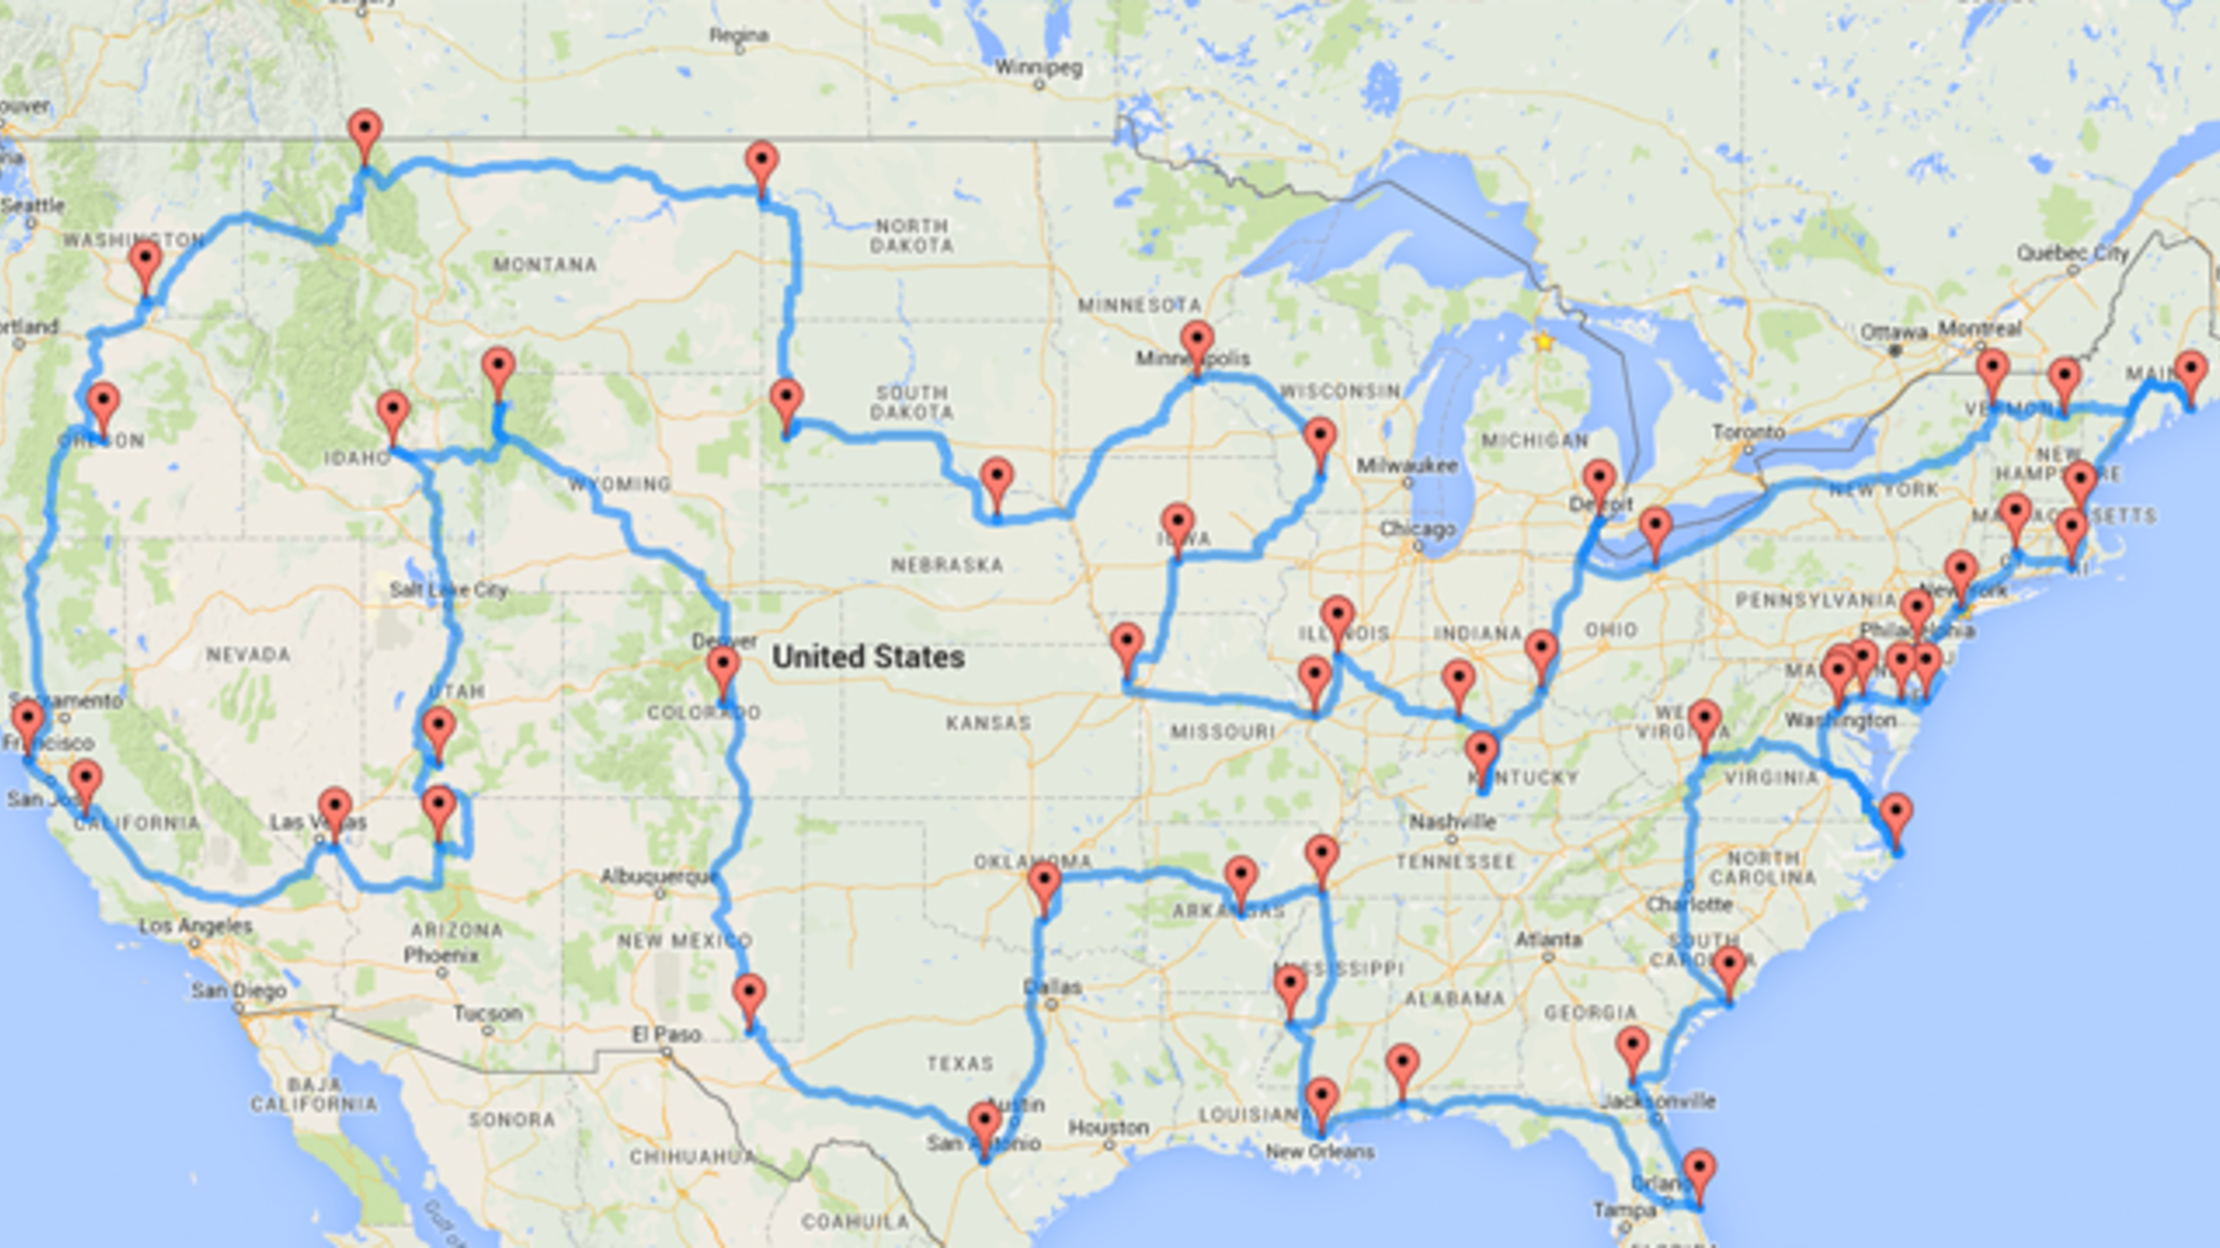 This Map Shows the Ultimate U.S. Road Trip | Mental Floss Ky Road Maps Driving Directions on cumberland falls ky directions, ky road map detailed, ky road maps highway map, walton ky map driving directions, cumberland falls state park directions, ky road map of kentucky,